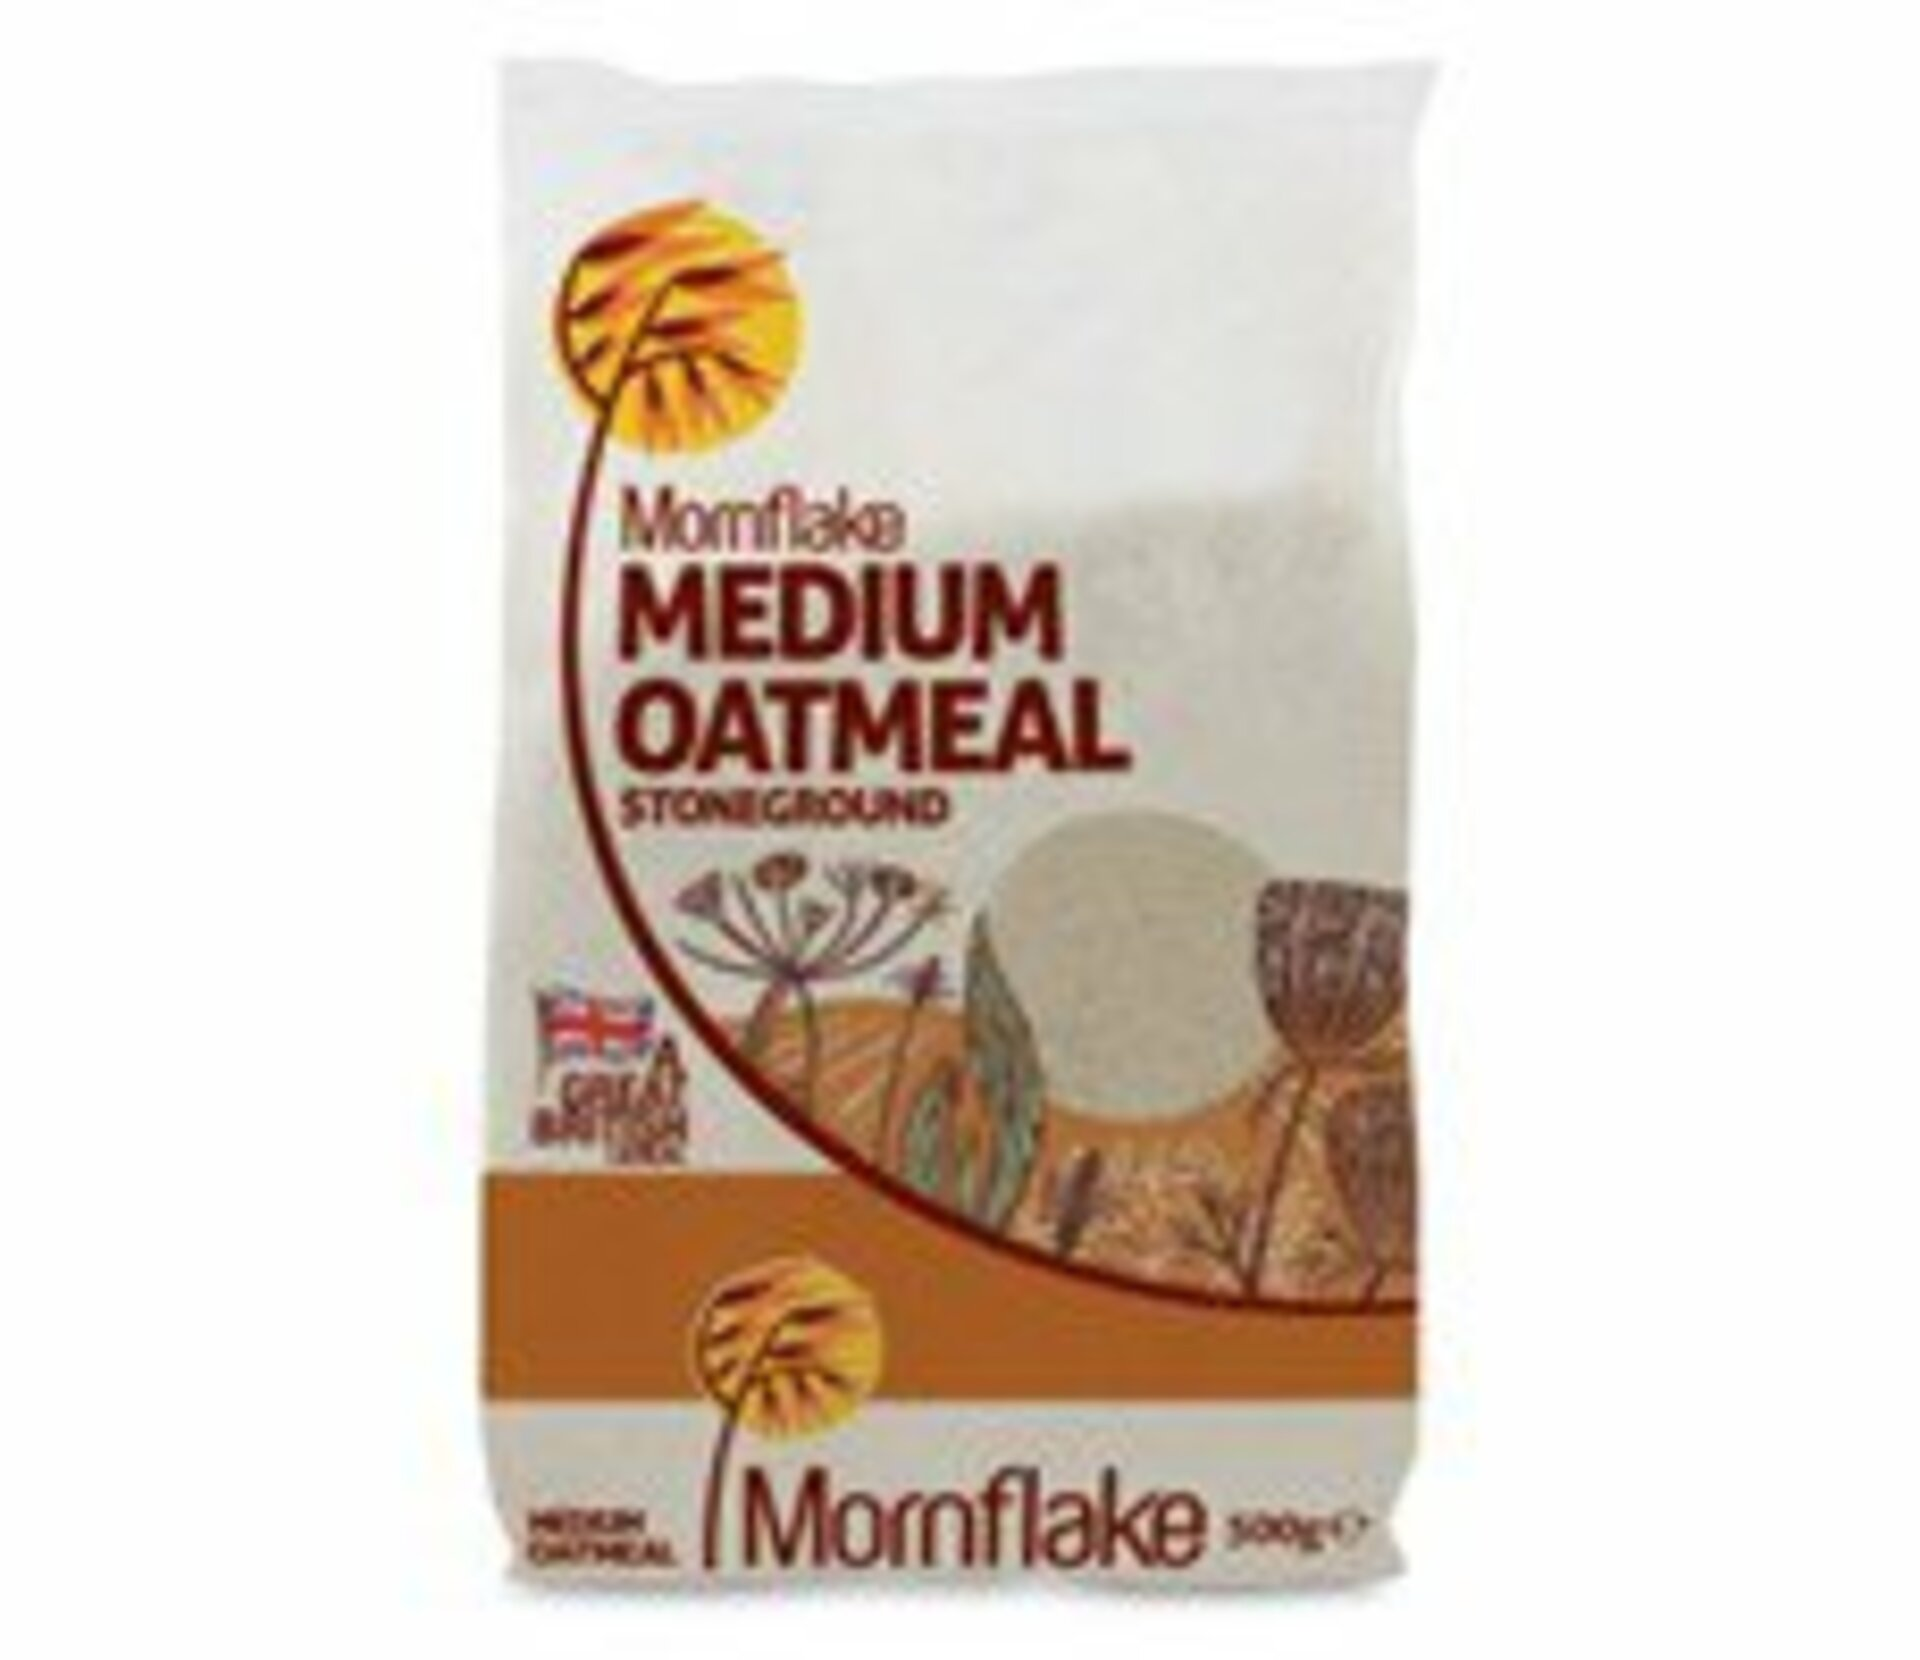 Mornflake Medium Oatmeal 500g